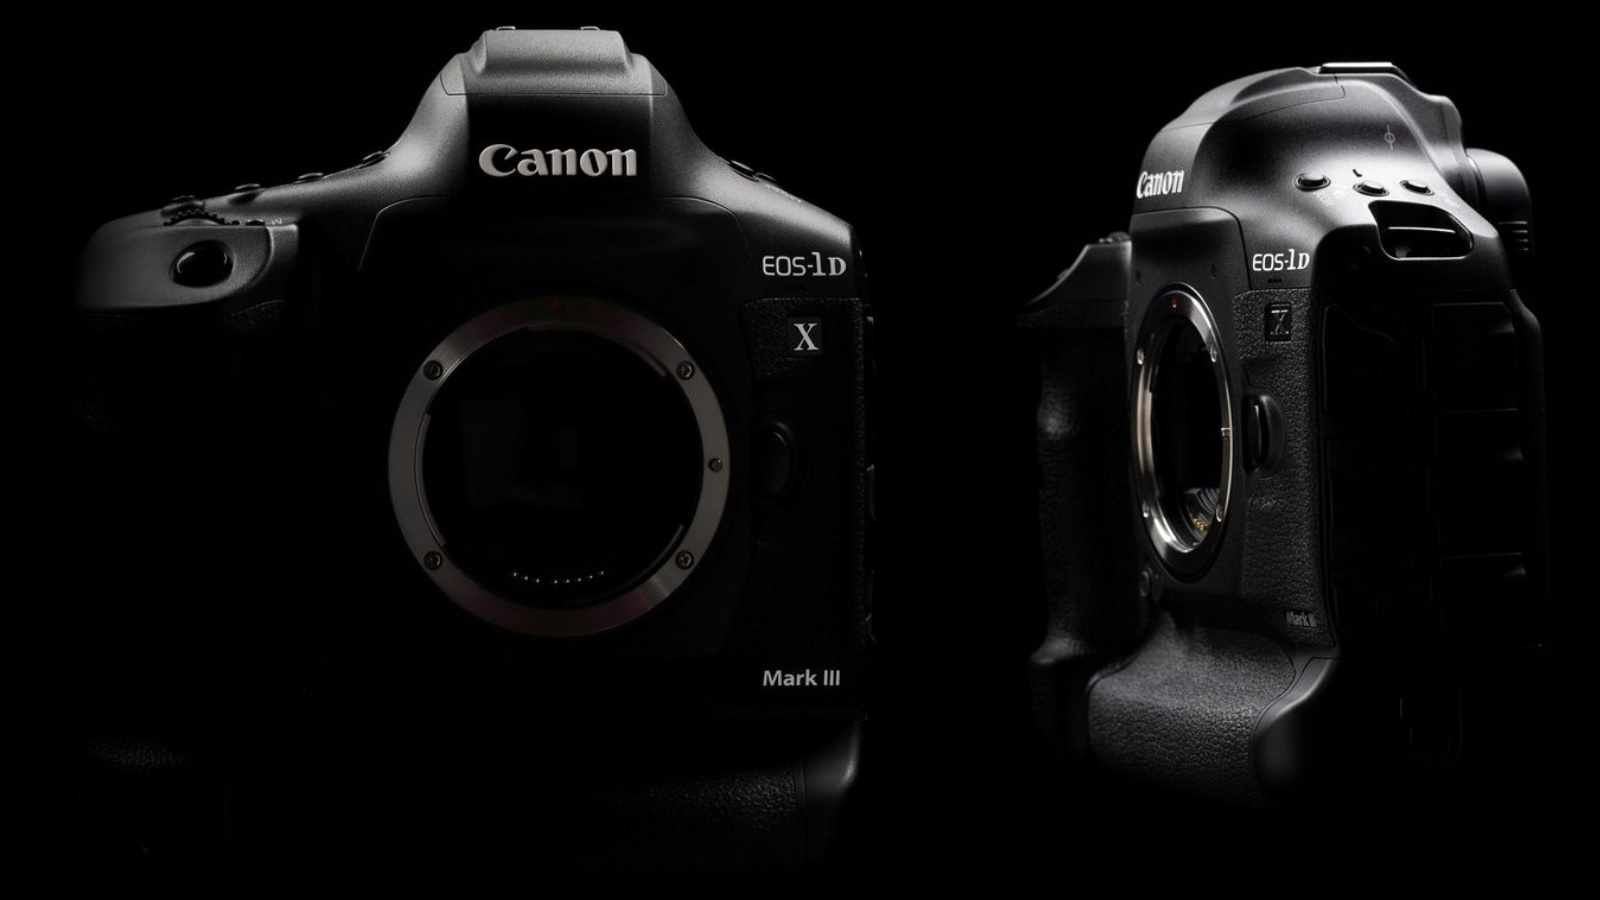 Anuncian el desarrollo de la Canon EOS-1DX Mark III - 4K 10-bit 4:2:2 y video RAW interno